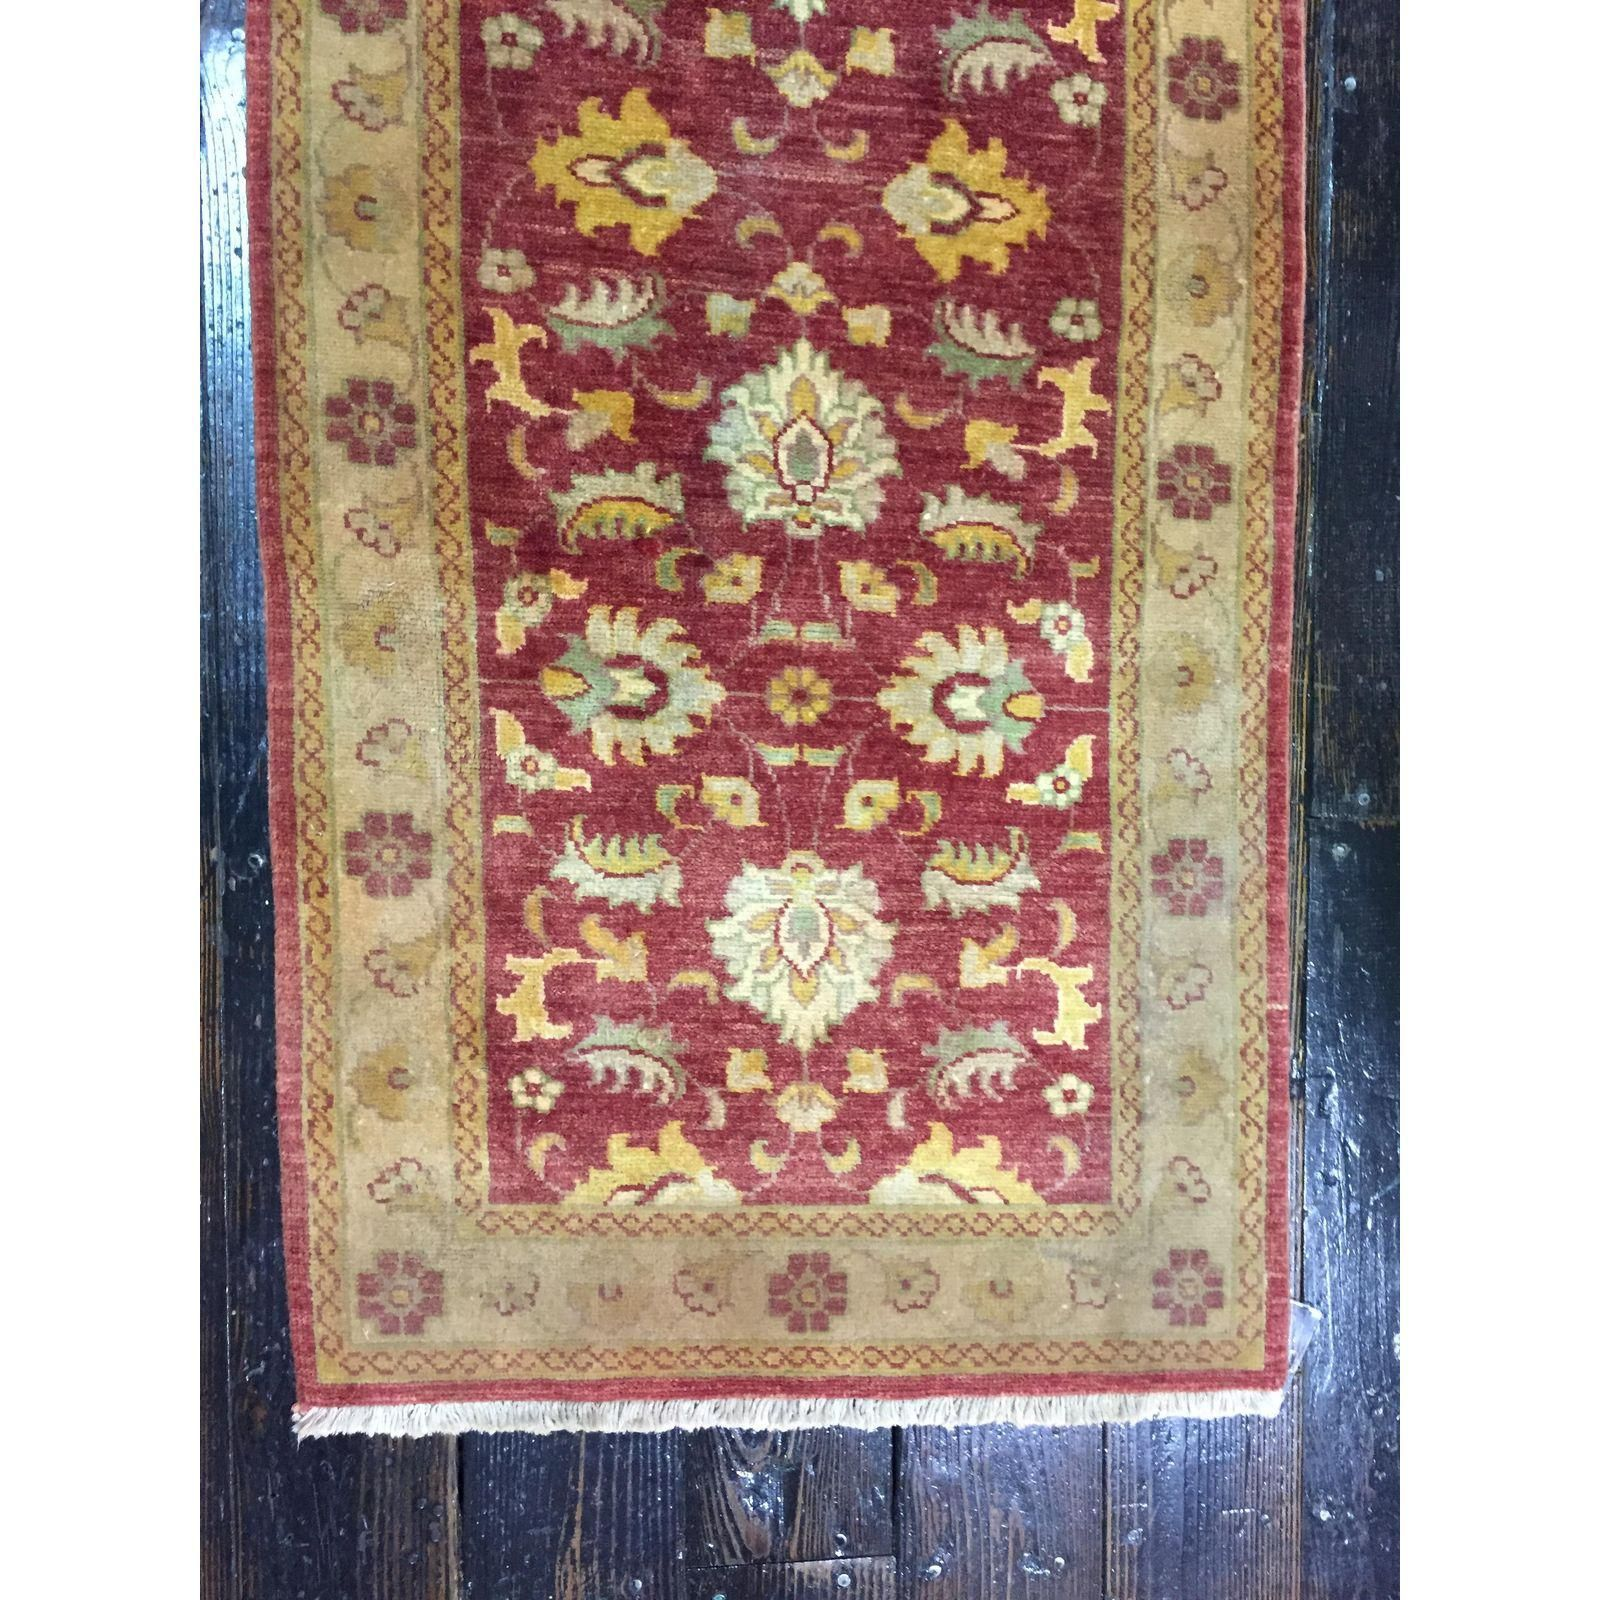 Oushak Runner Rug X Red And Cream Colored Handmade Gorgeous Accent For A Hallway Or Entryway